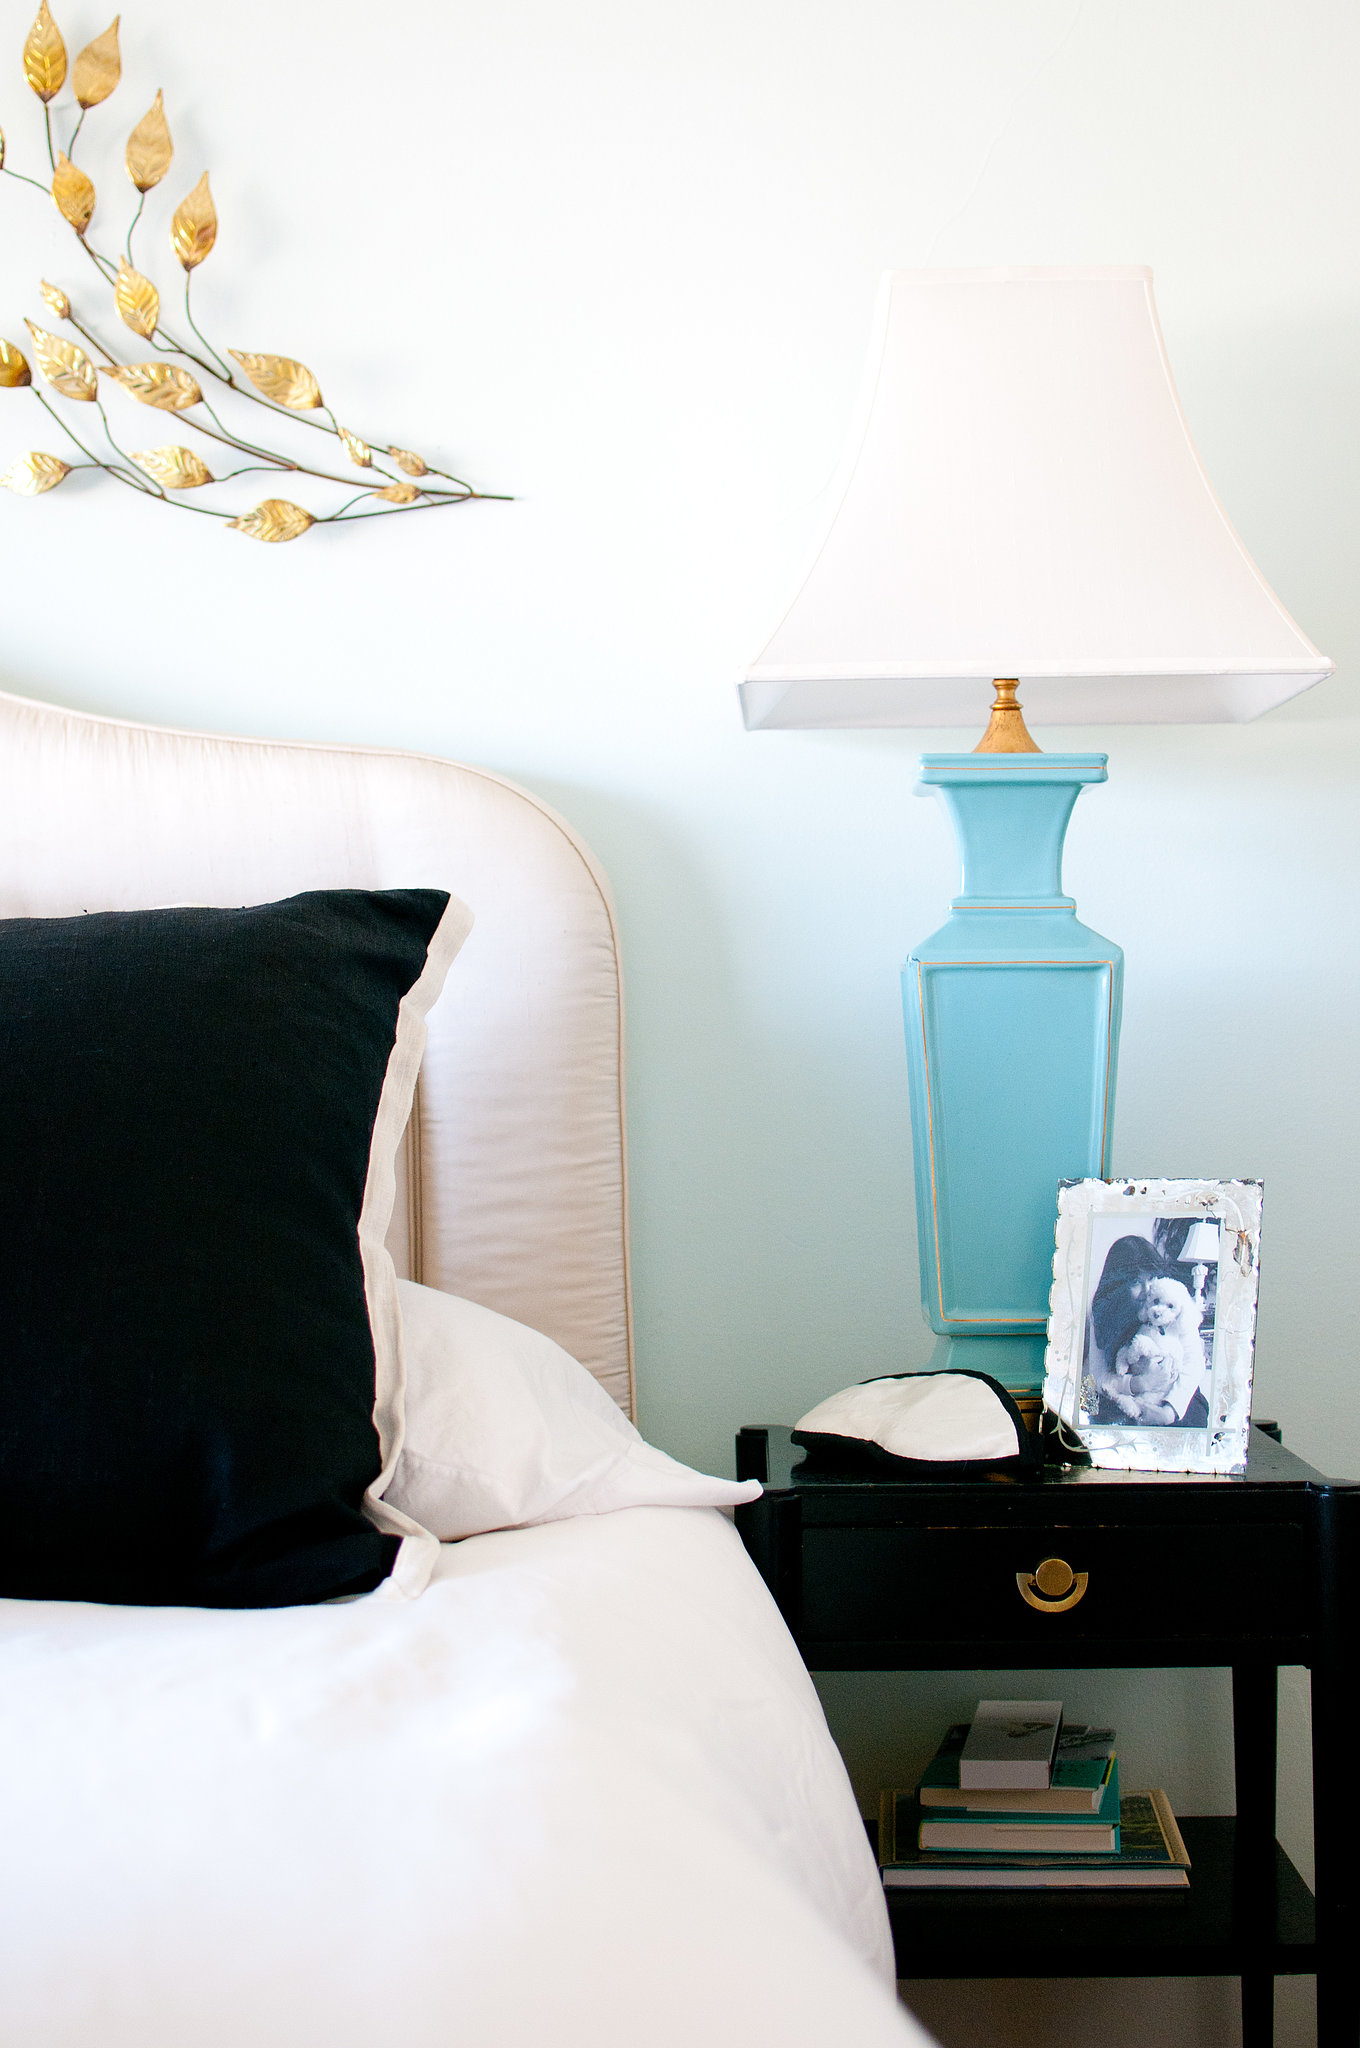 Bold turquoise bedside lamps echo the softer hues of the pillows. Source: Kassie Borreson